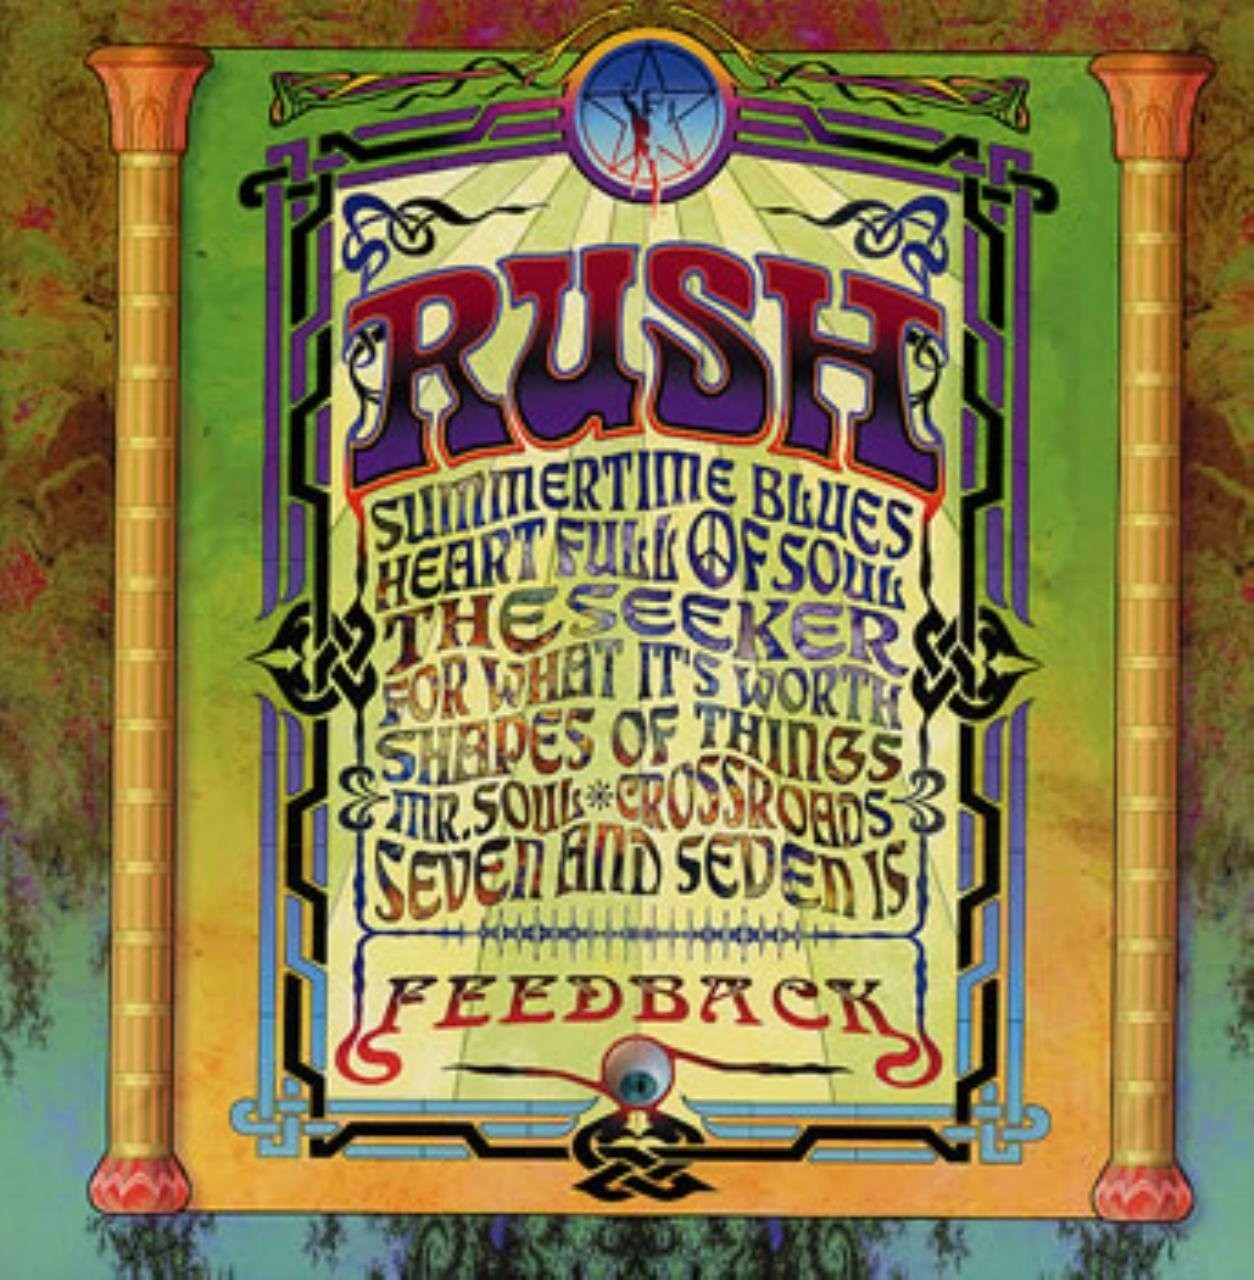 Rush - Feedback LP